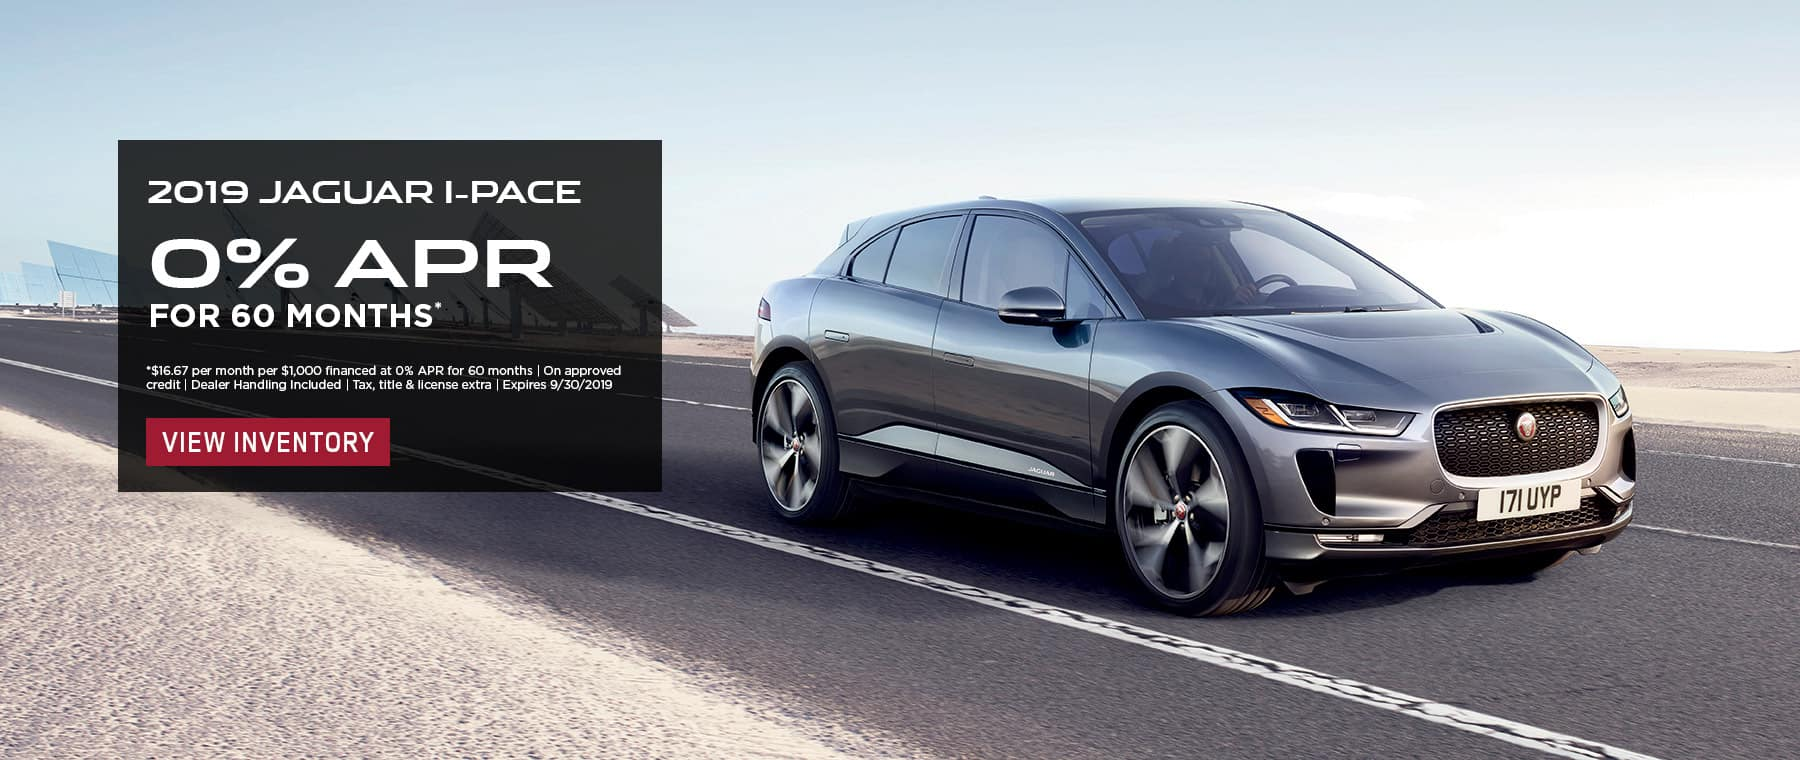 2019 I-Pace Sept